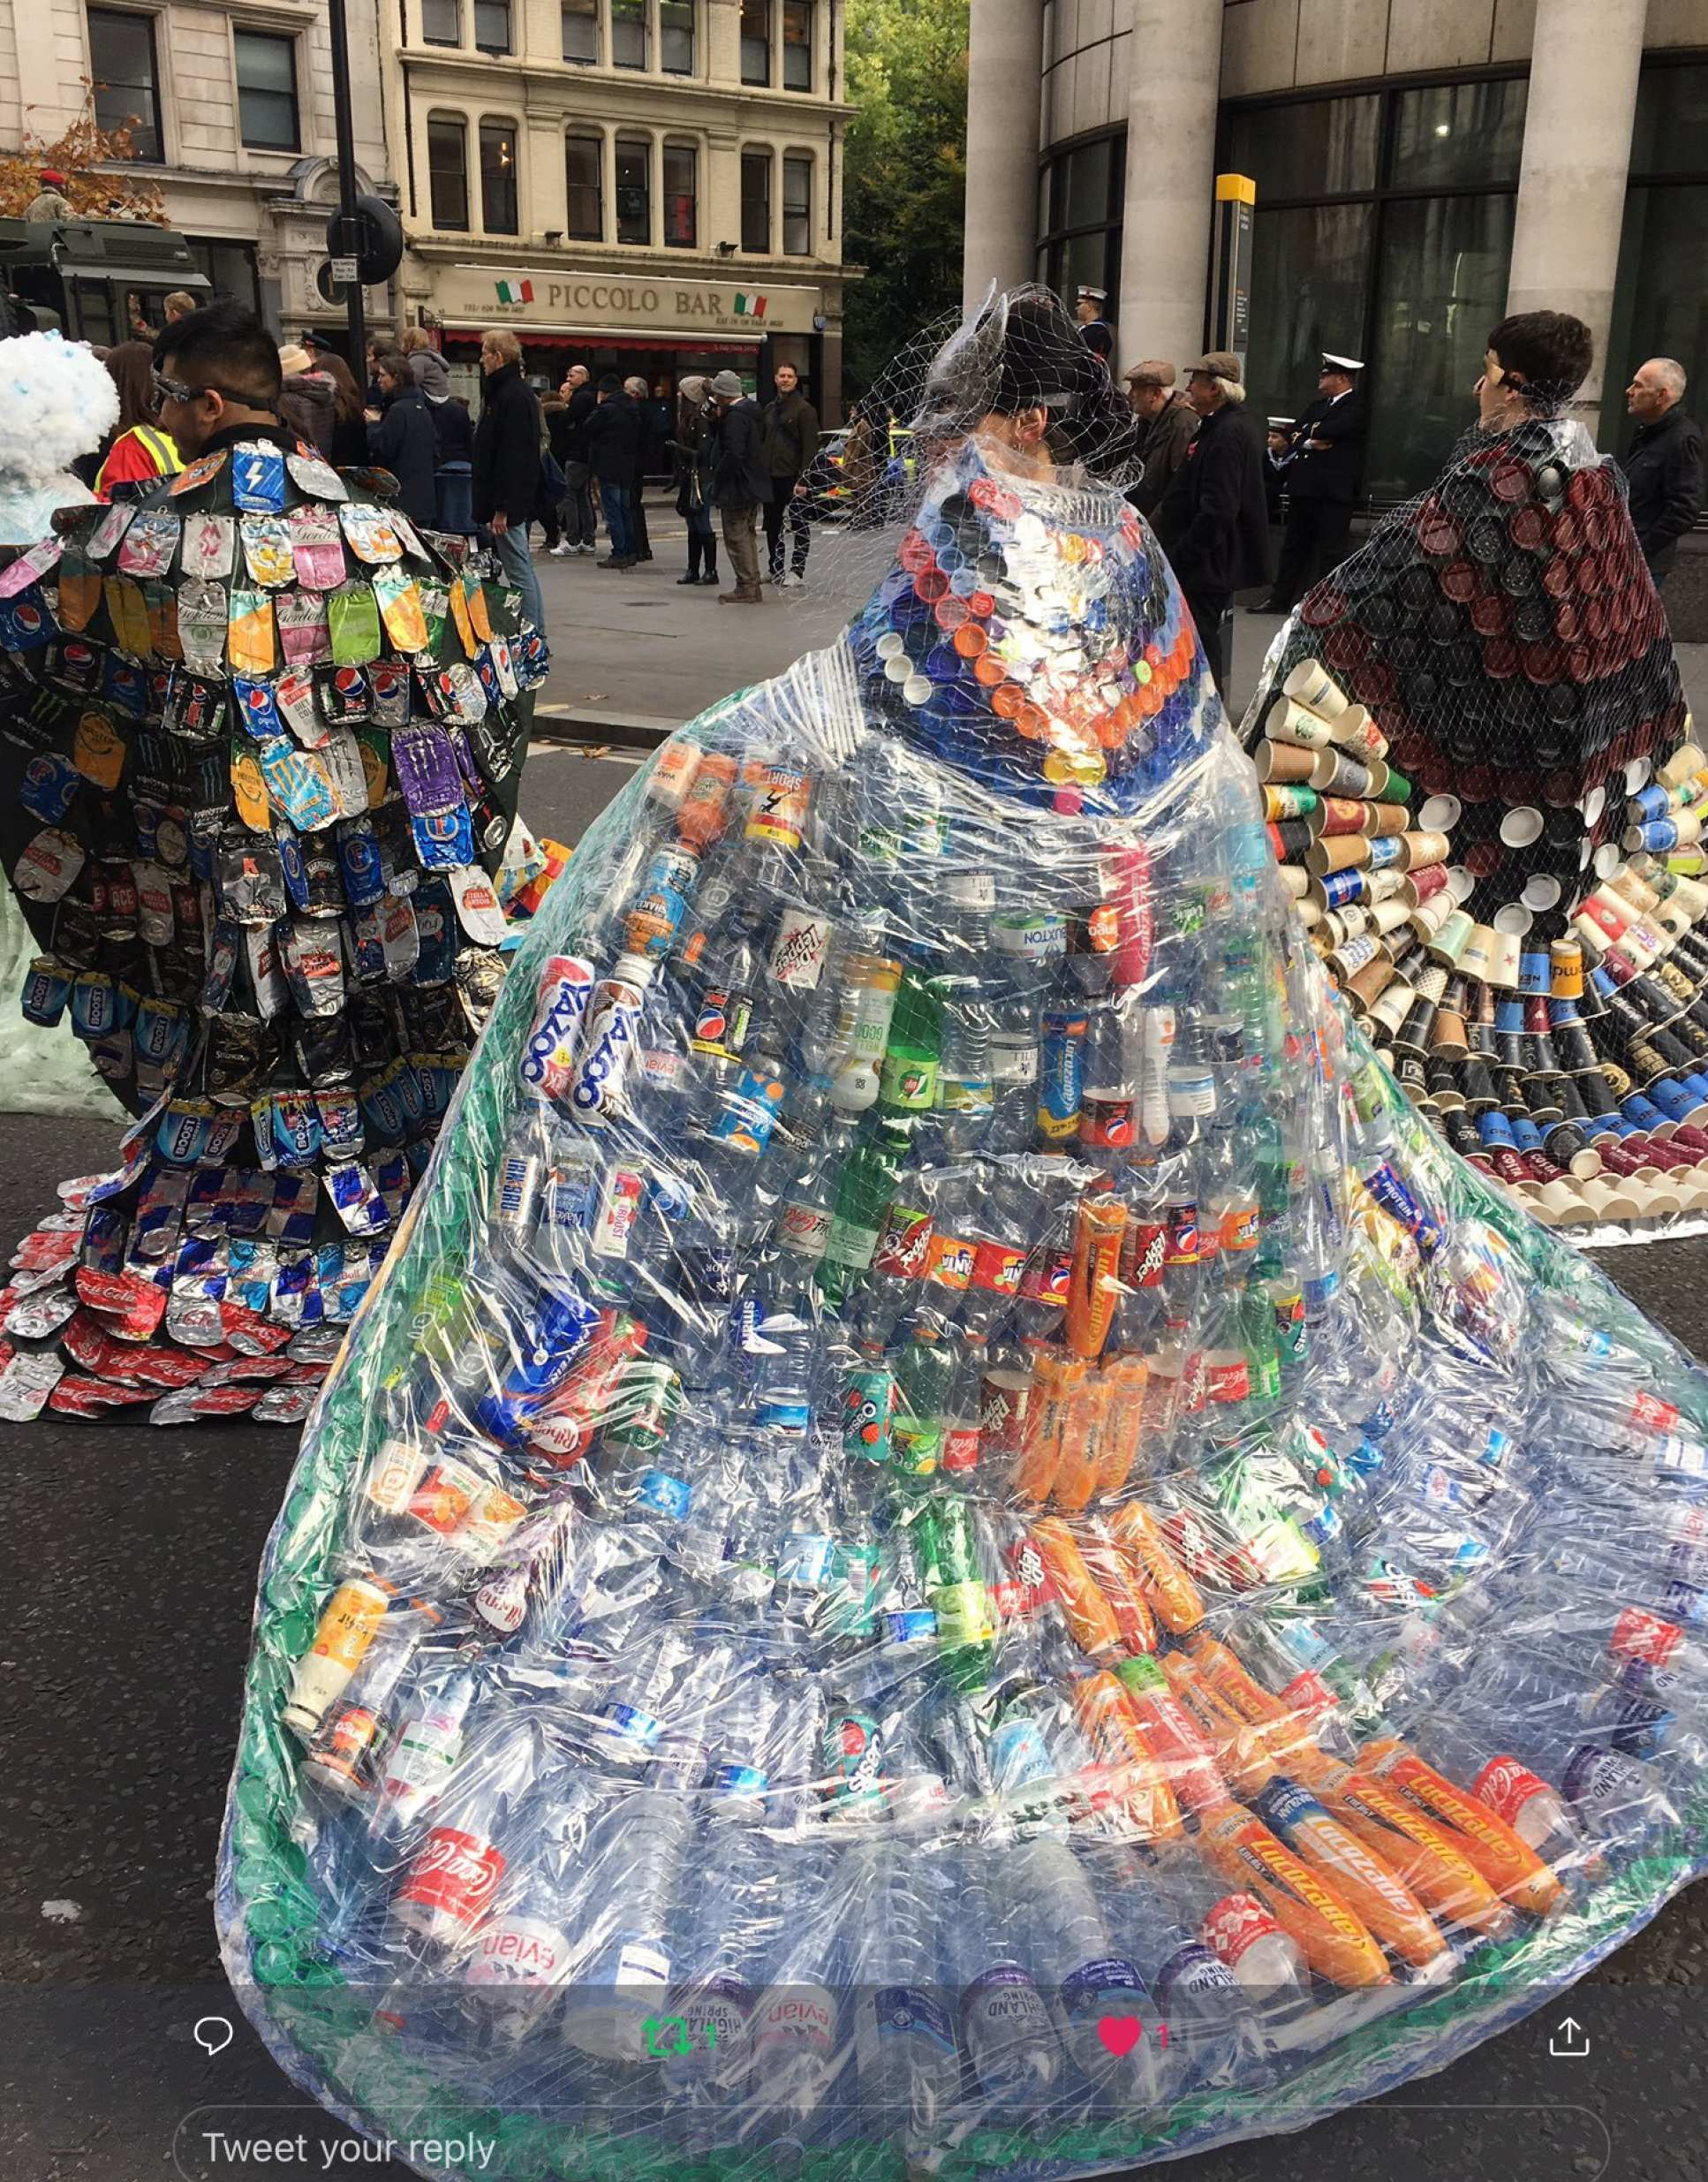 Three people wear cloaks made of trash. Left: crushed drinks cans. Centre: Plastic bottles. Right: disposable cups